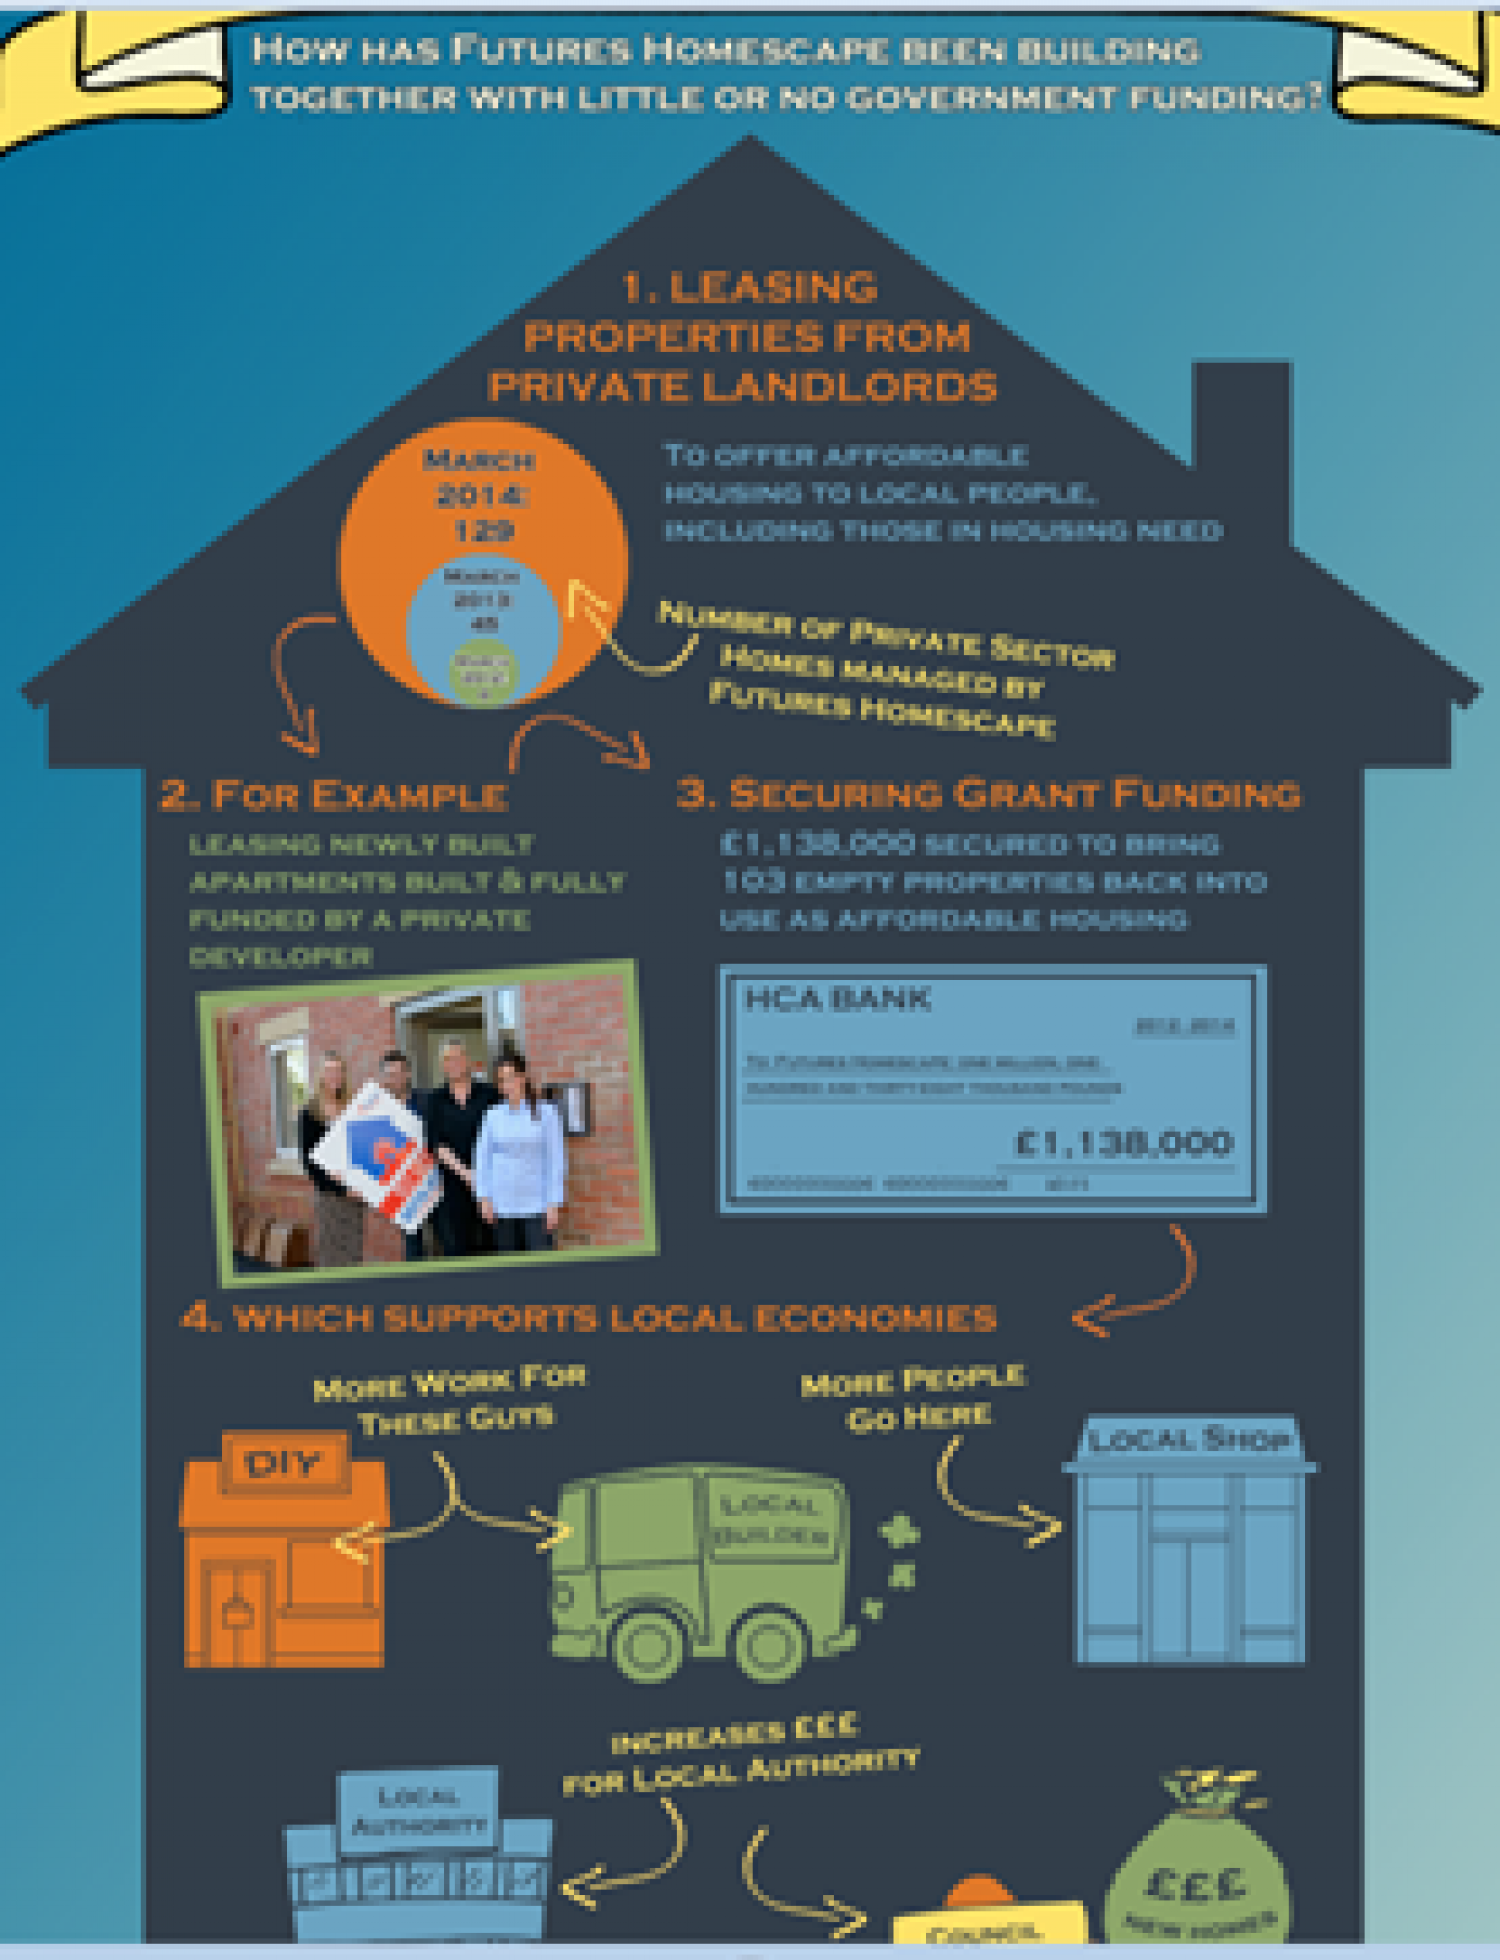 How has Futures Homescape Been Building Together With Little or no Government Funding? Infographic